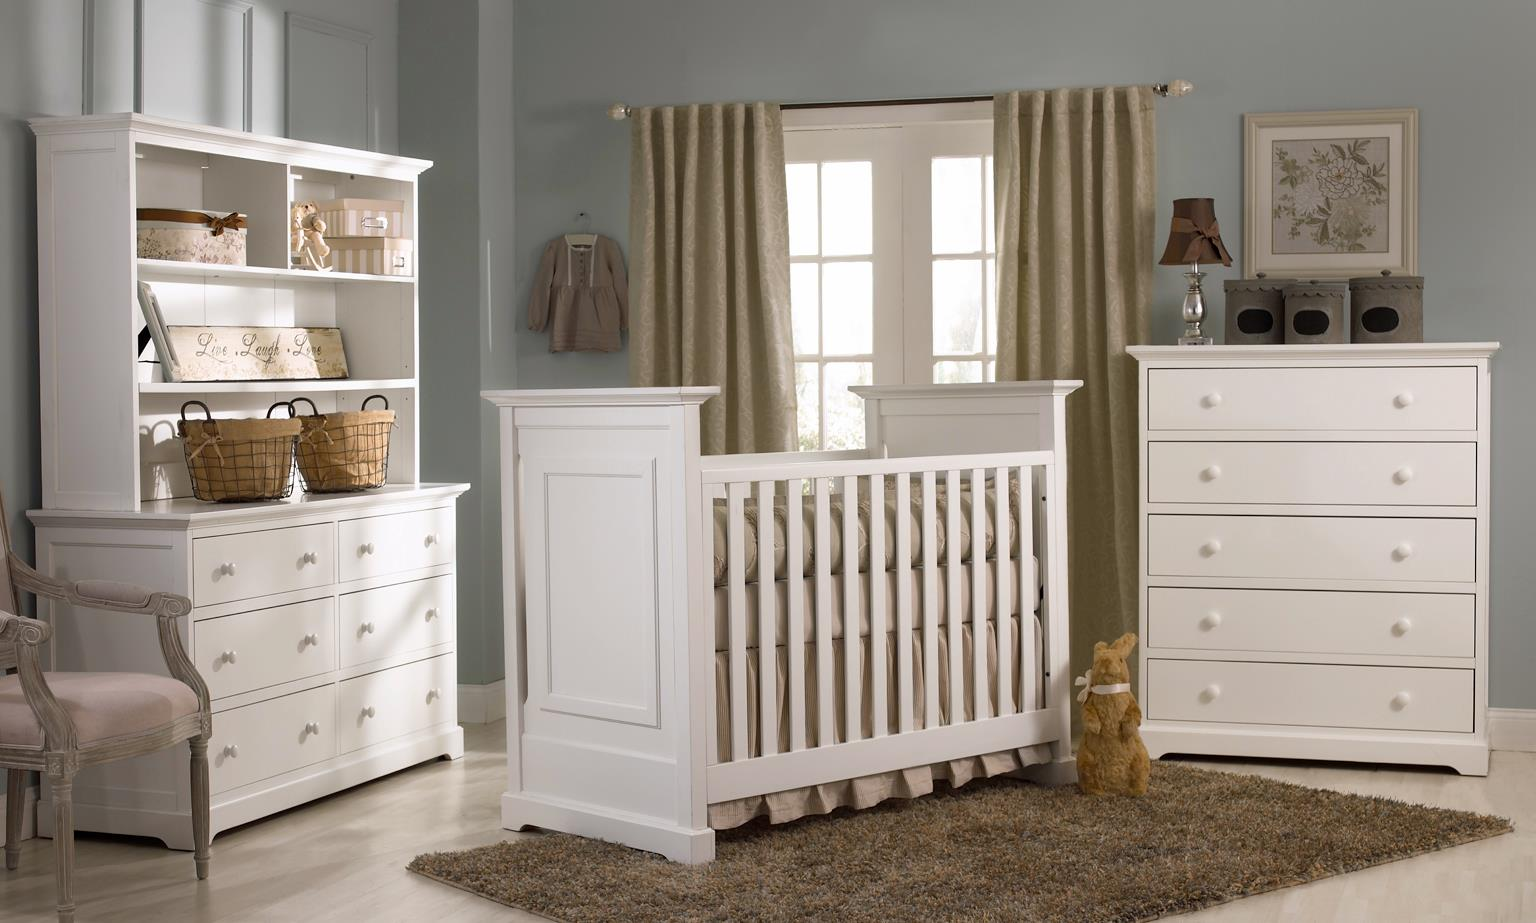 ... Nursery Furniture Ideas. White Munire Crib On Cream Ceramics Floor With  Tan Carpet Matched With Blue Wall With White